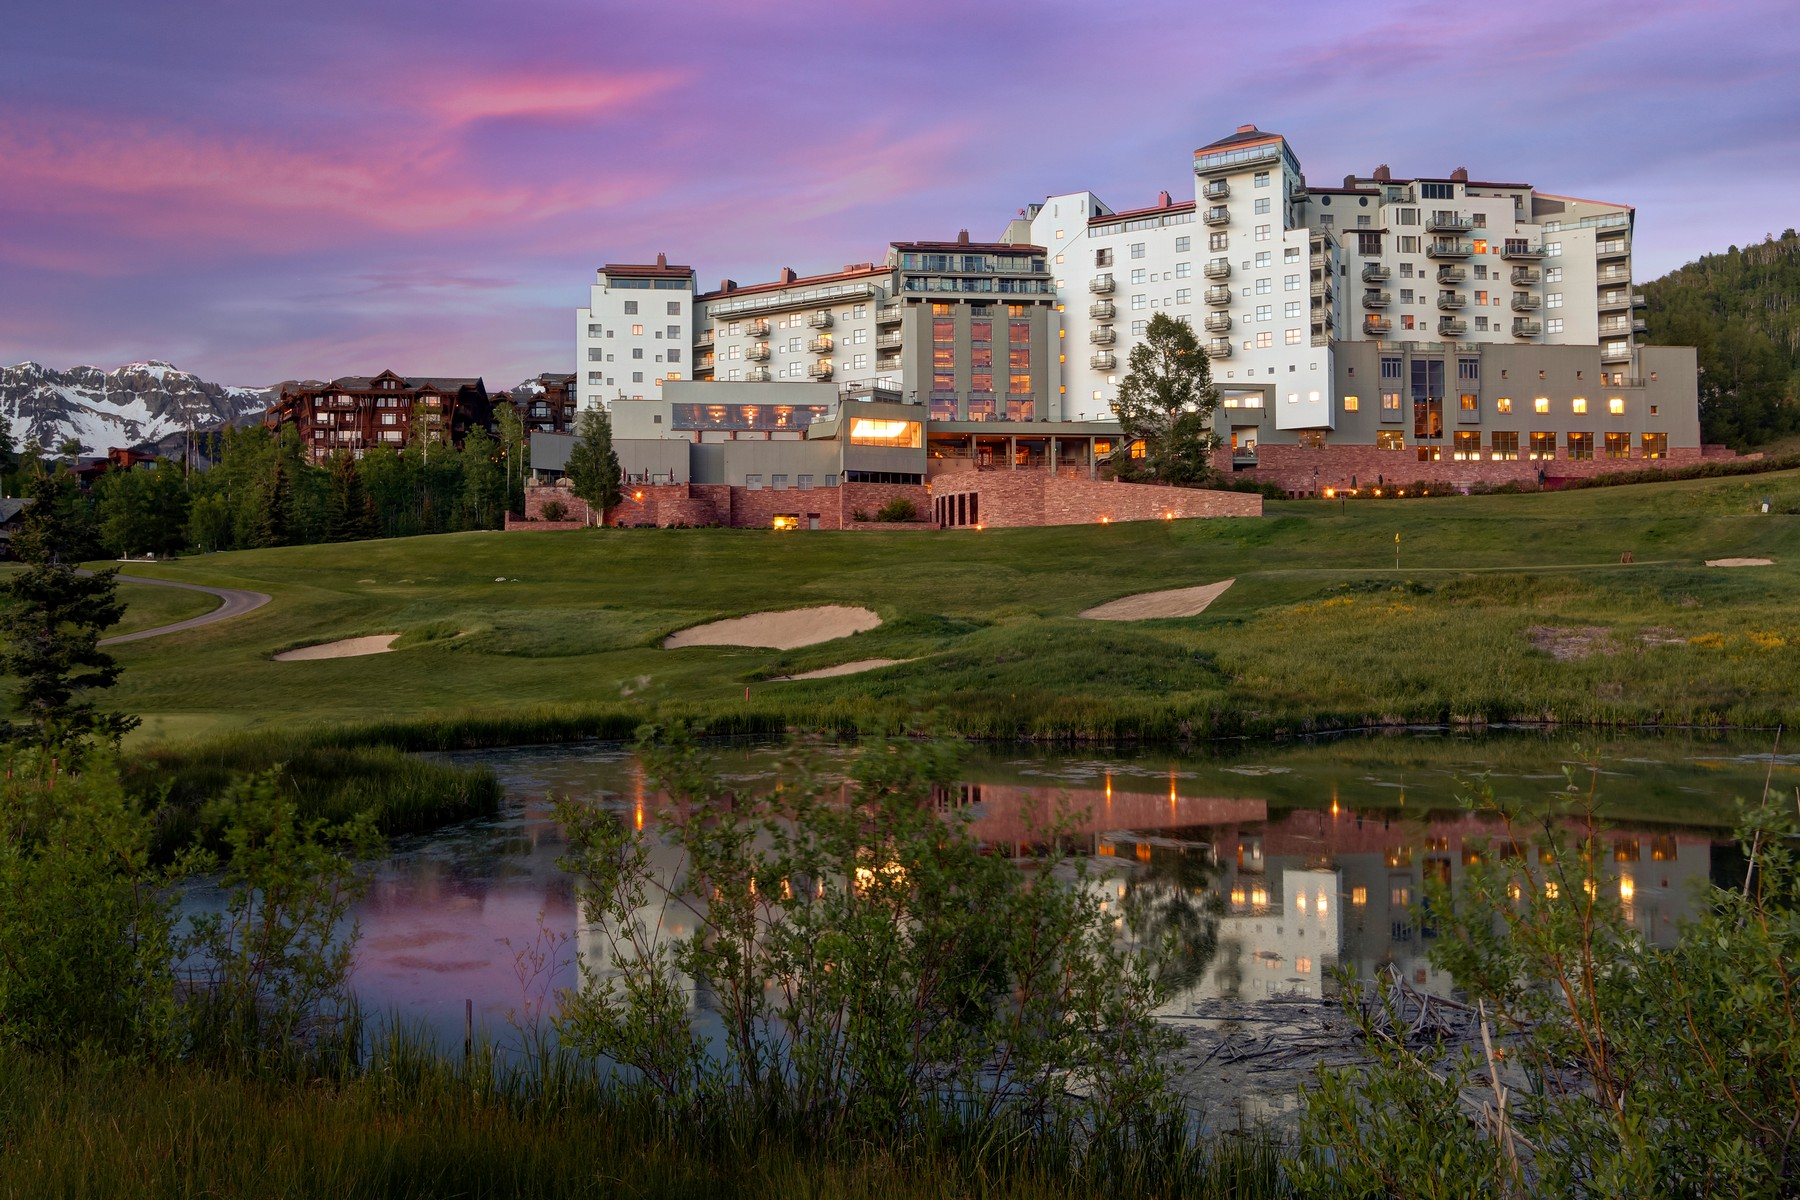 Condominium for Sale at The Peaks Resort and Spa, Unit 410 136 Country Club Drive, Unit 410 Telluride, Colorado, 81435 United States